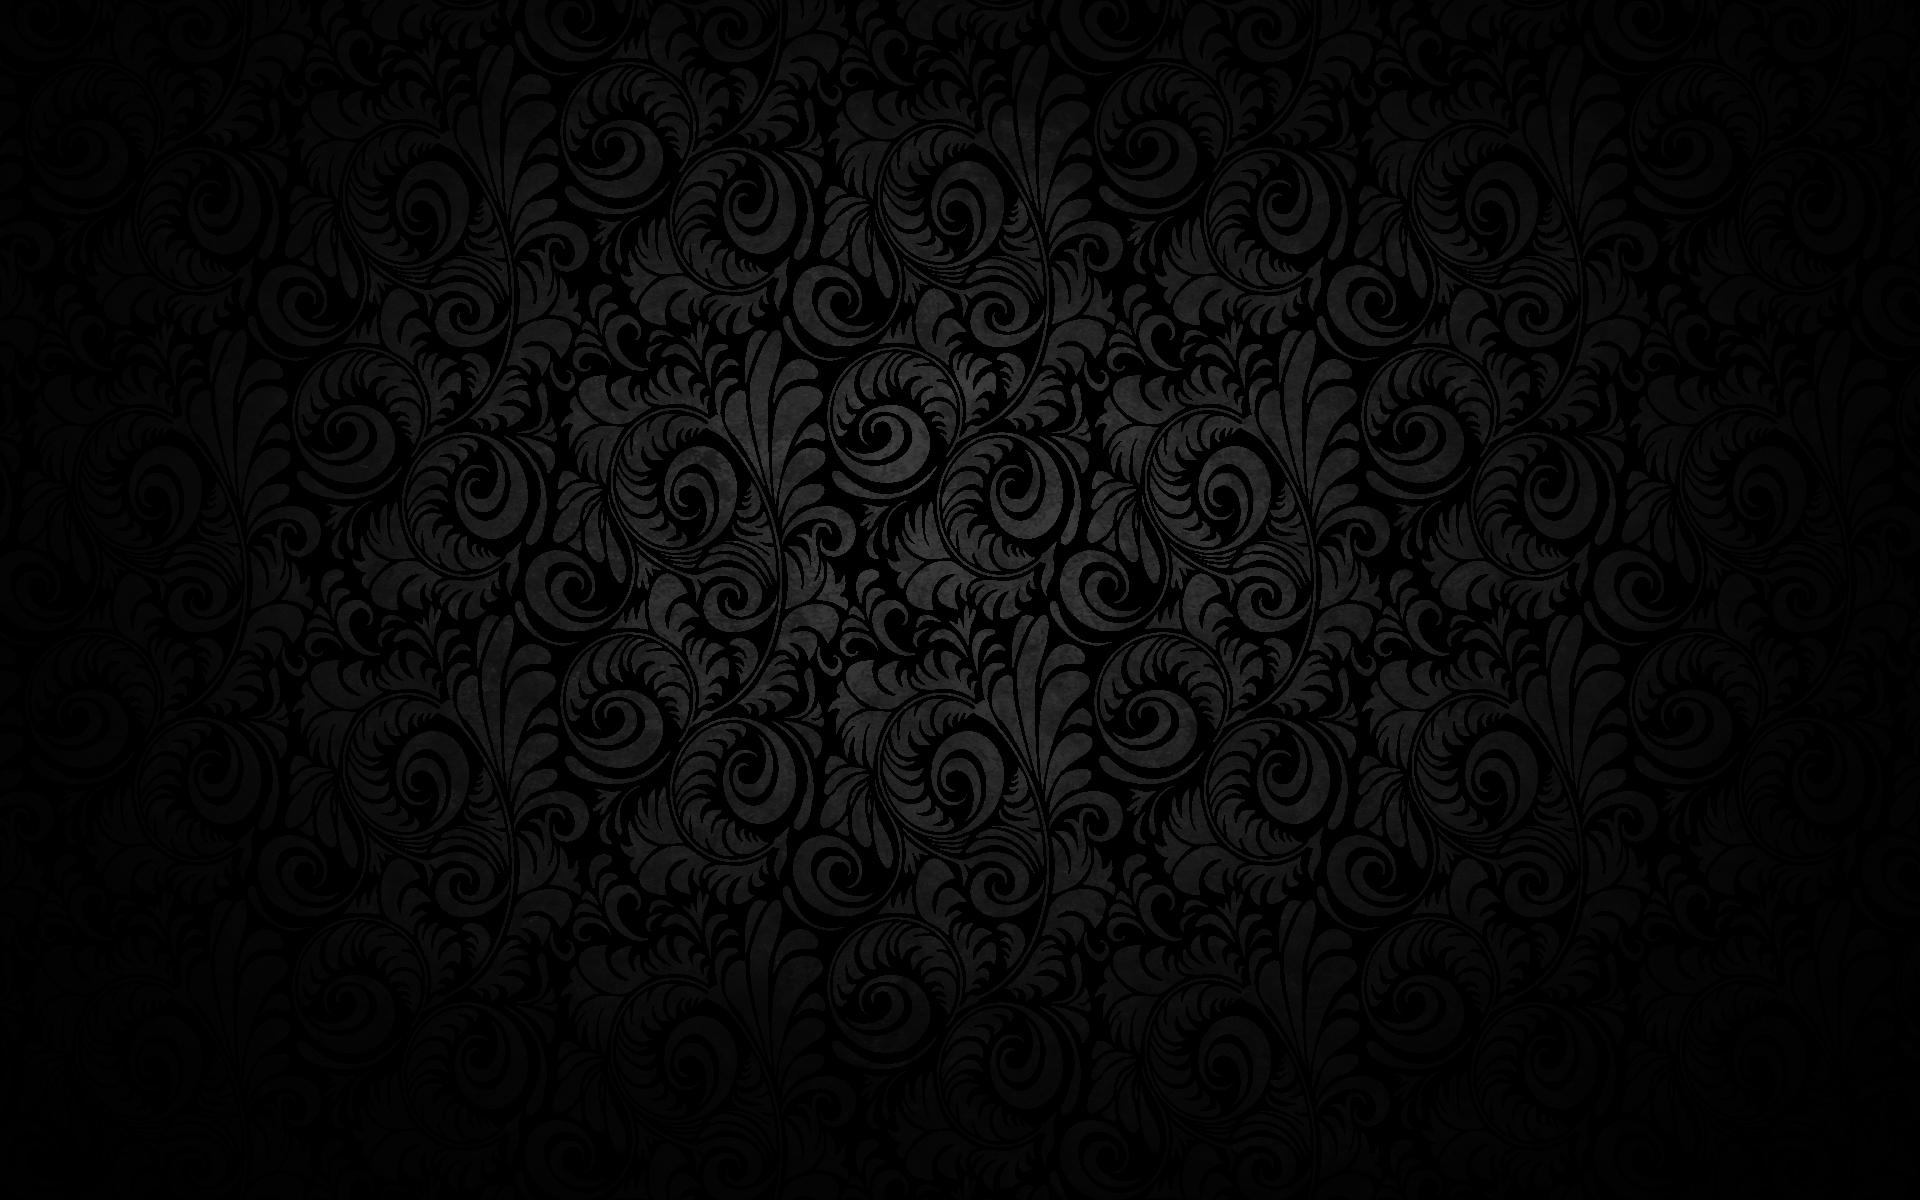 Goth Backgrounds - Wallpaper Cave